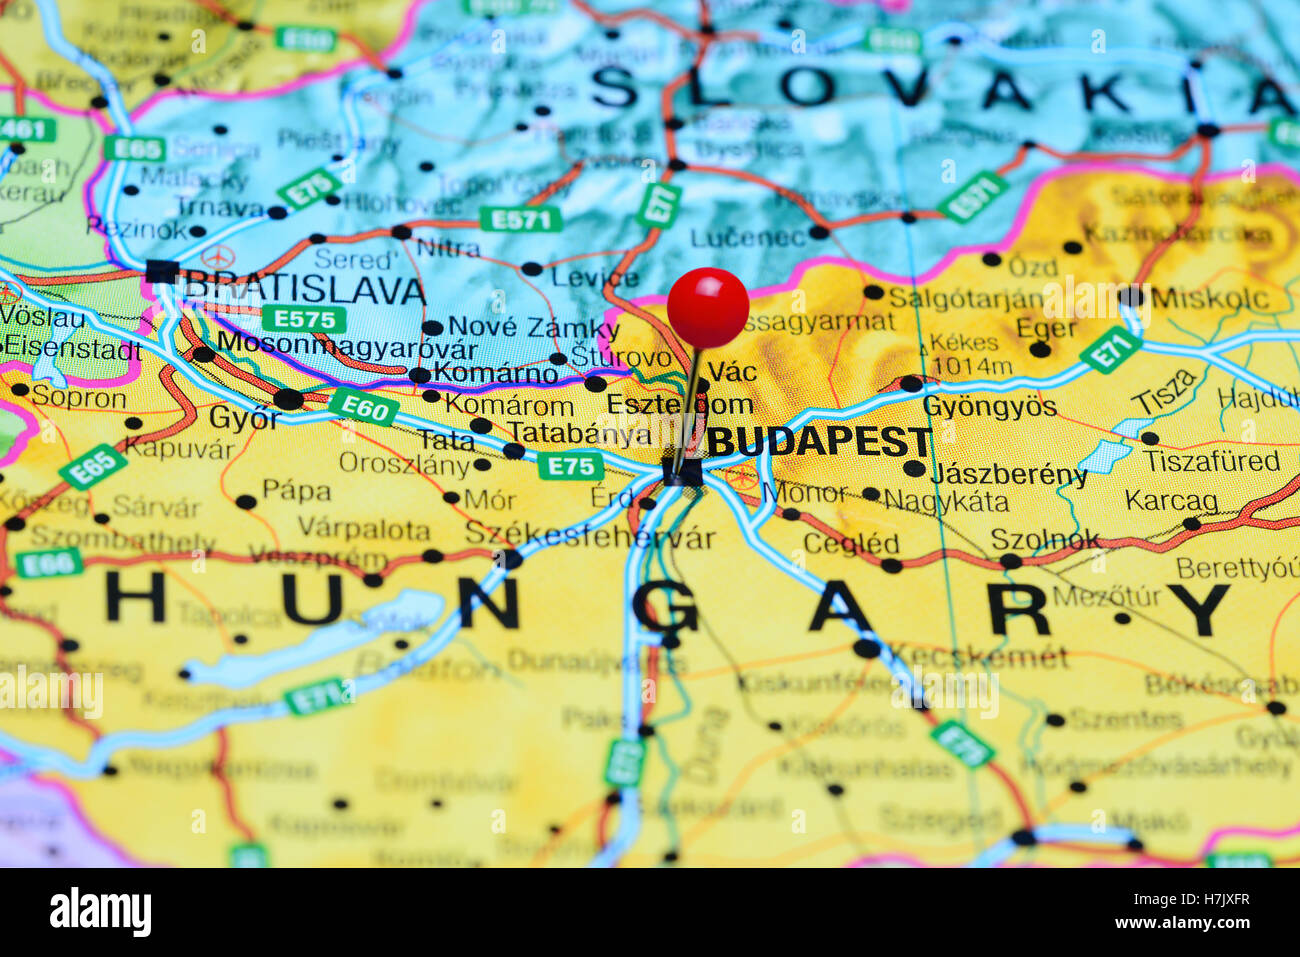 Budapest pinned on map europe stock photos budapest pinned on map budapest pinned on a map of hungary stock image gumiabroncs Image collections